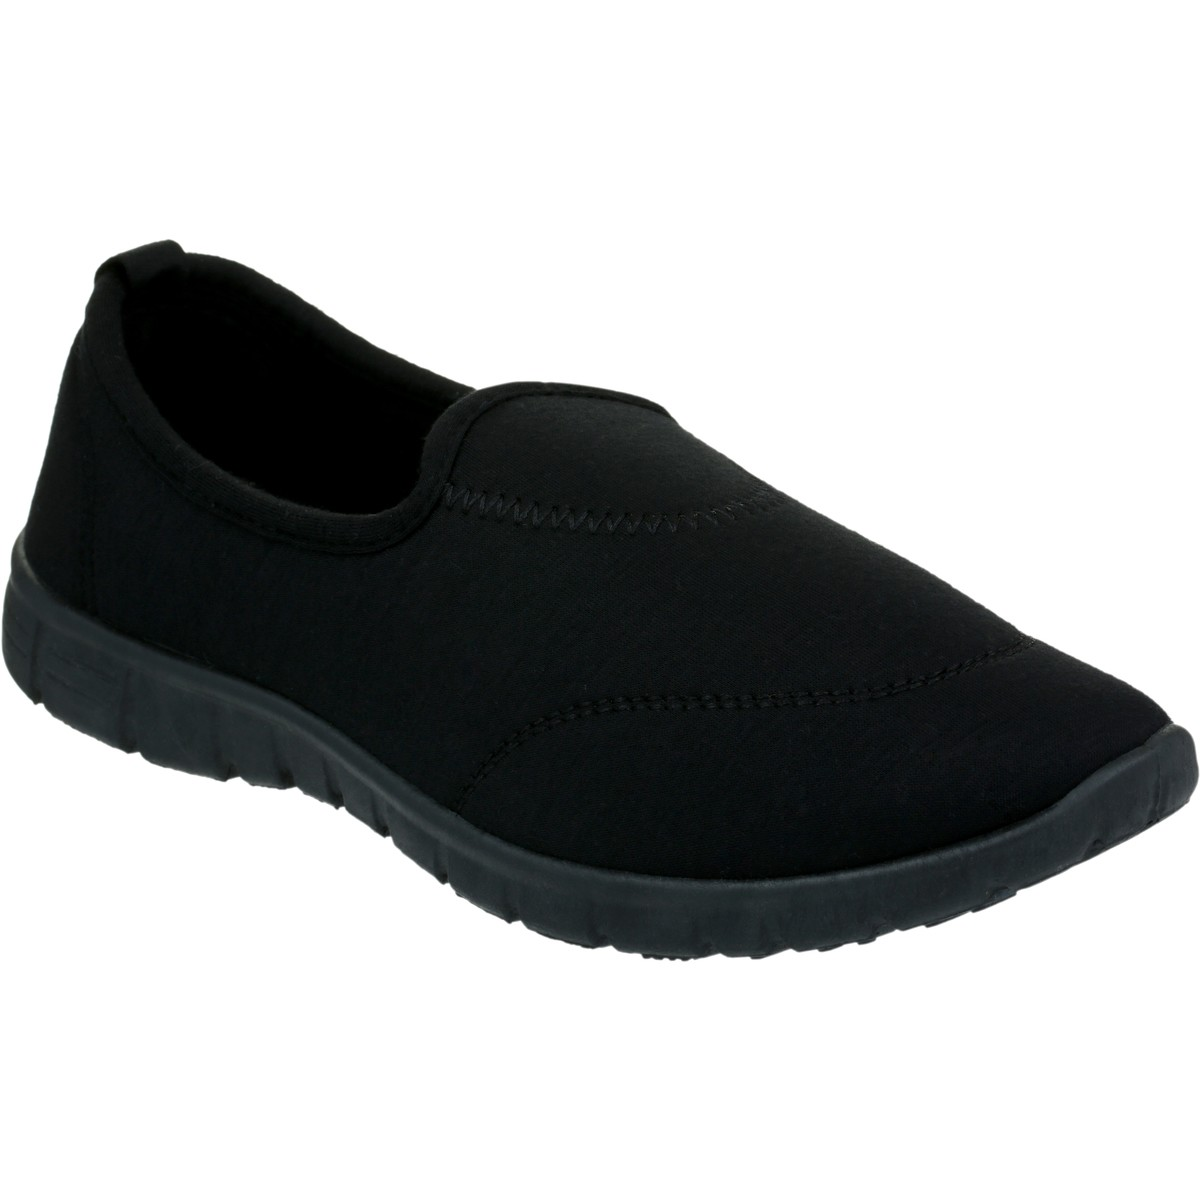 Womens Casual Slip On Shoes Black